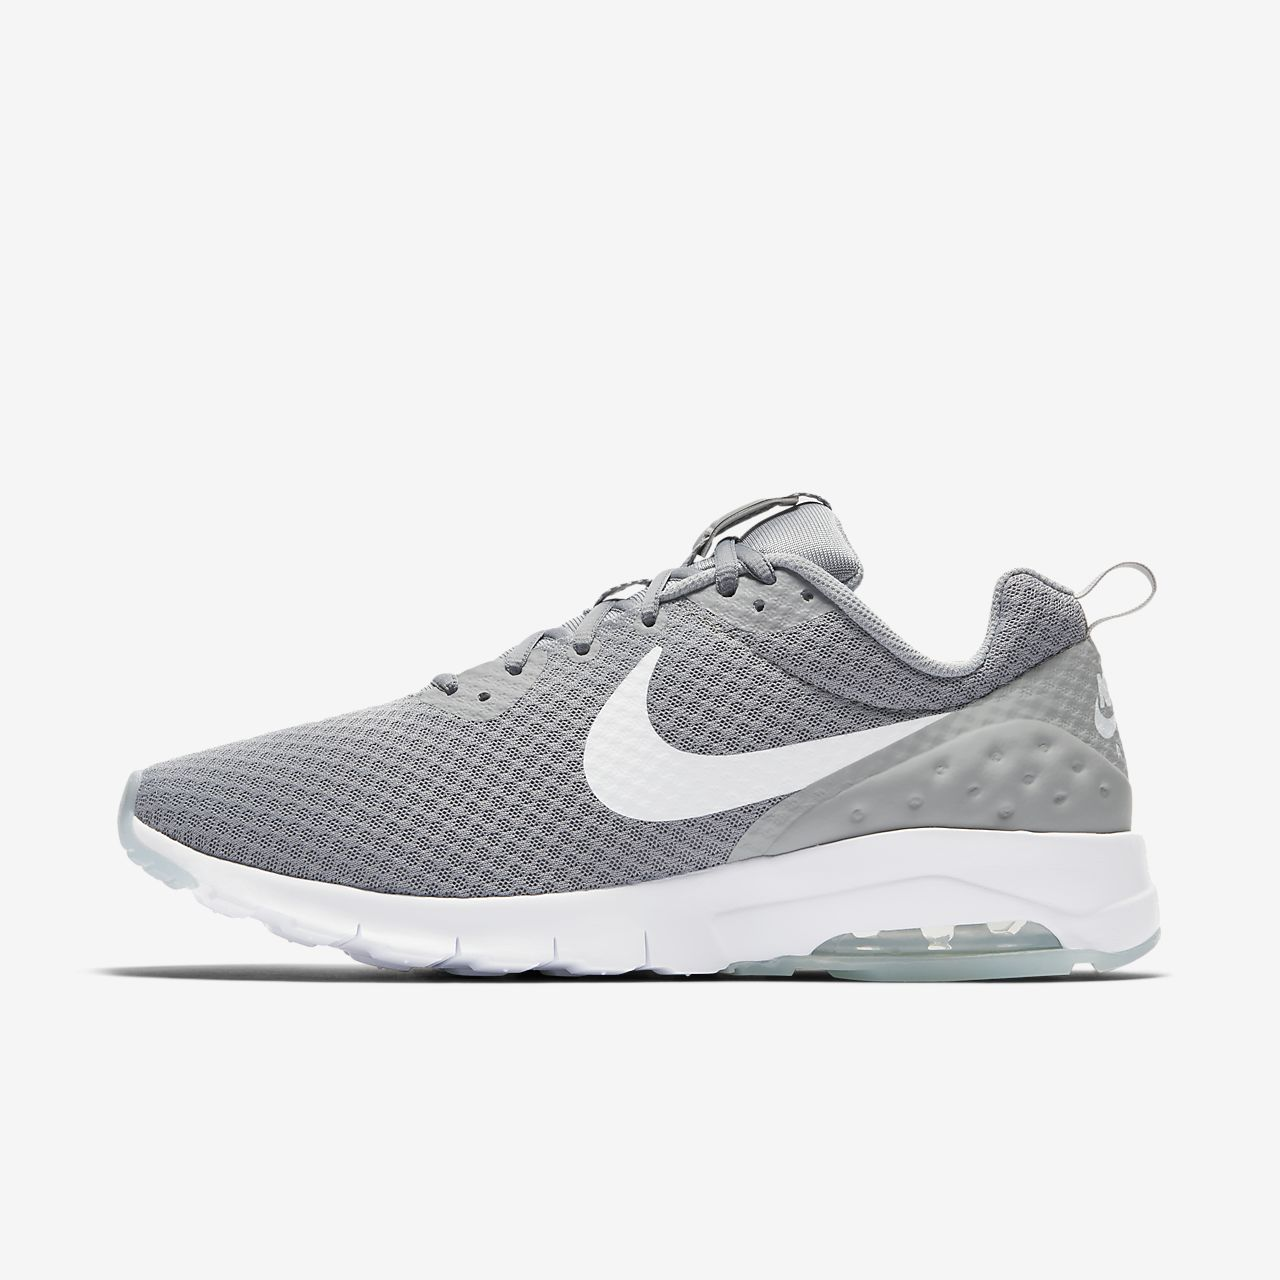 new product bd18c d0693 ... Chaussure Nike Air Max Motion Low pour Homme